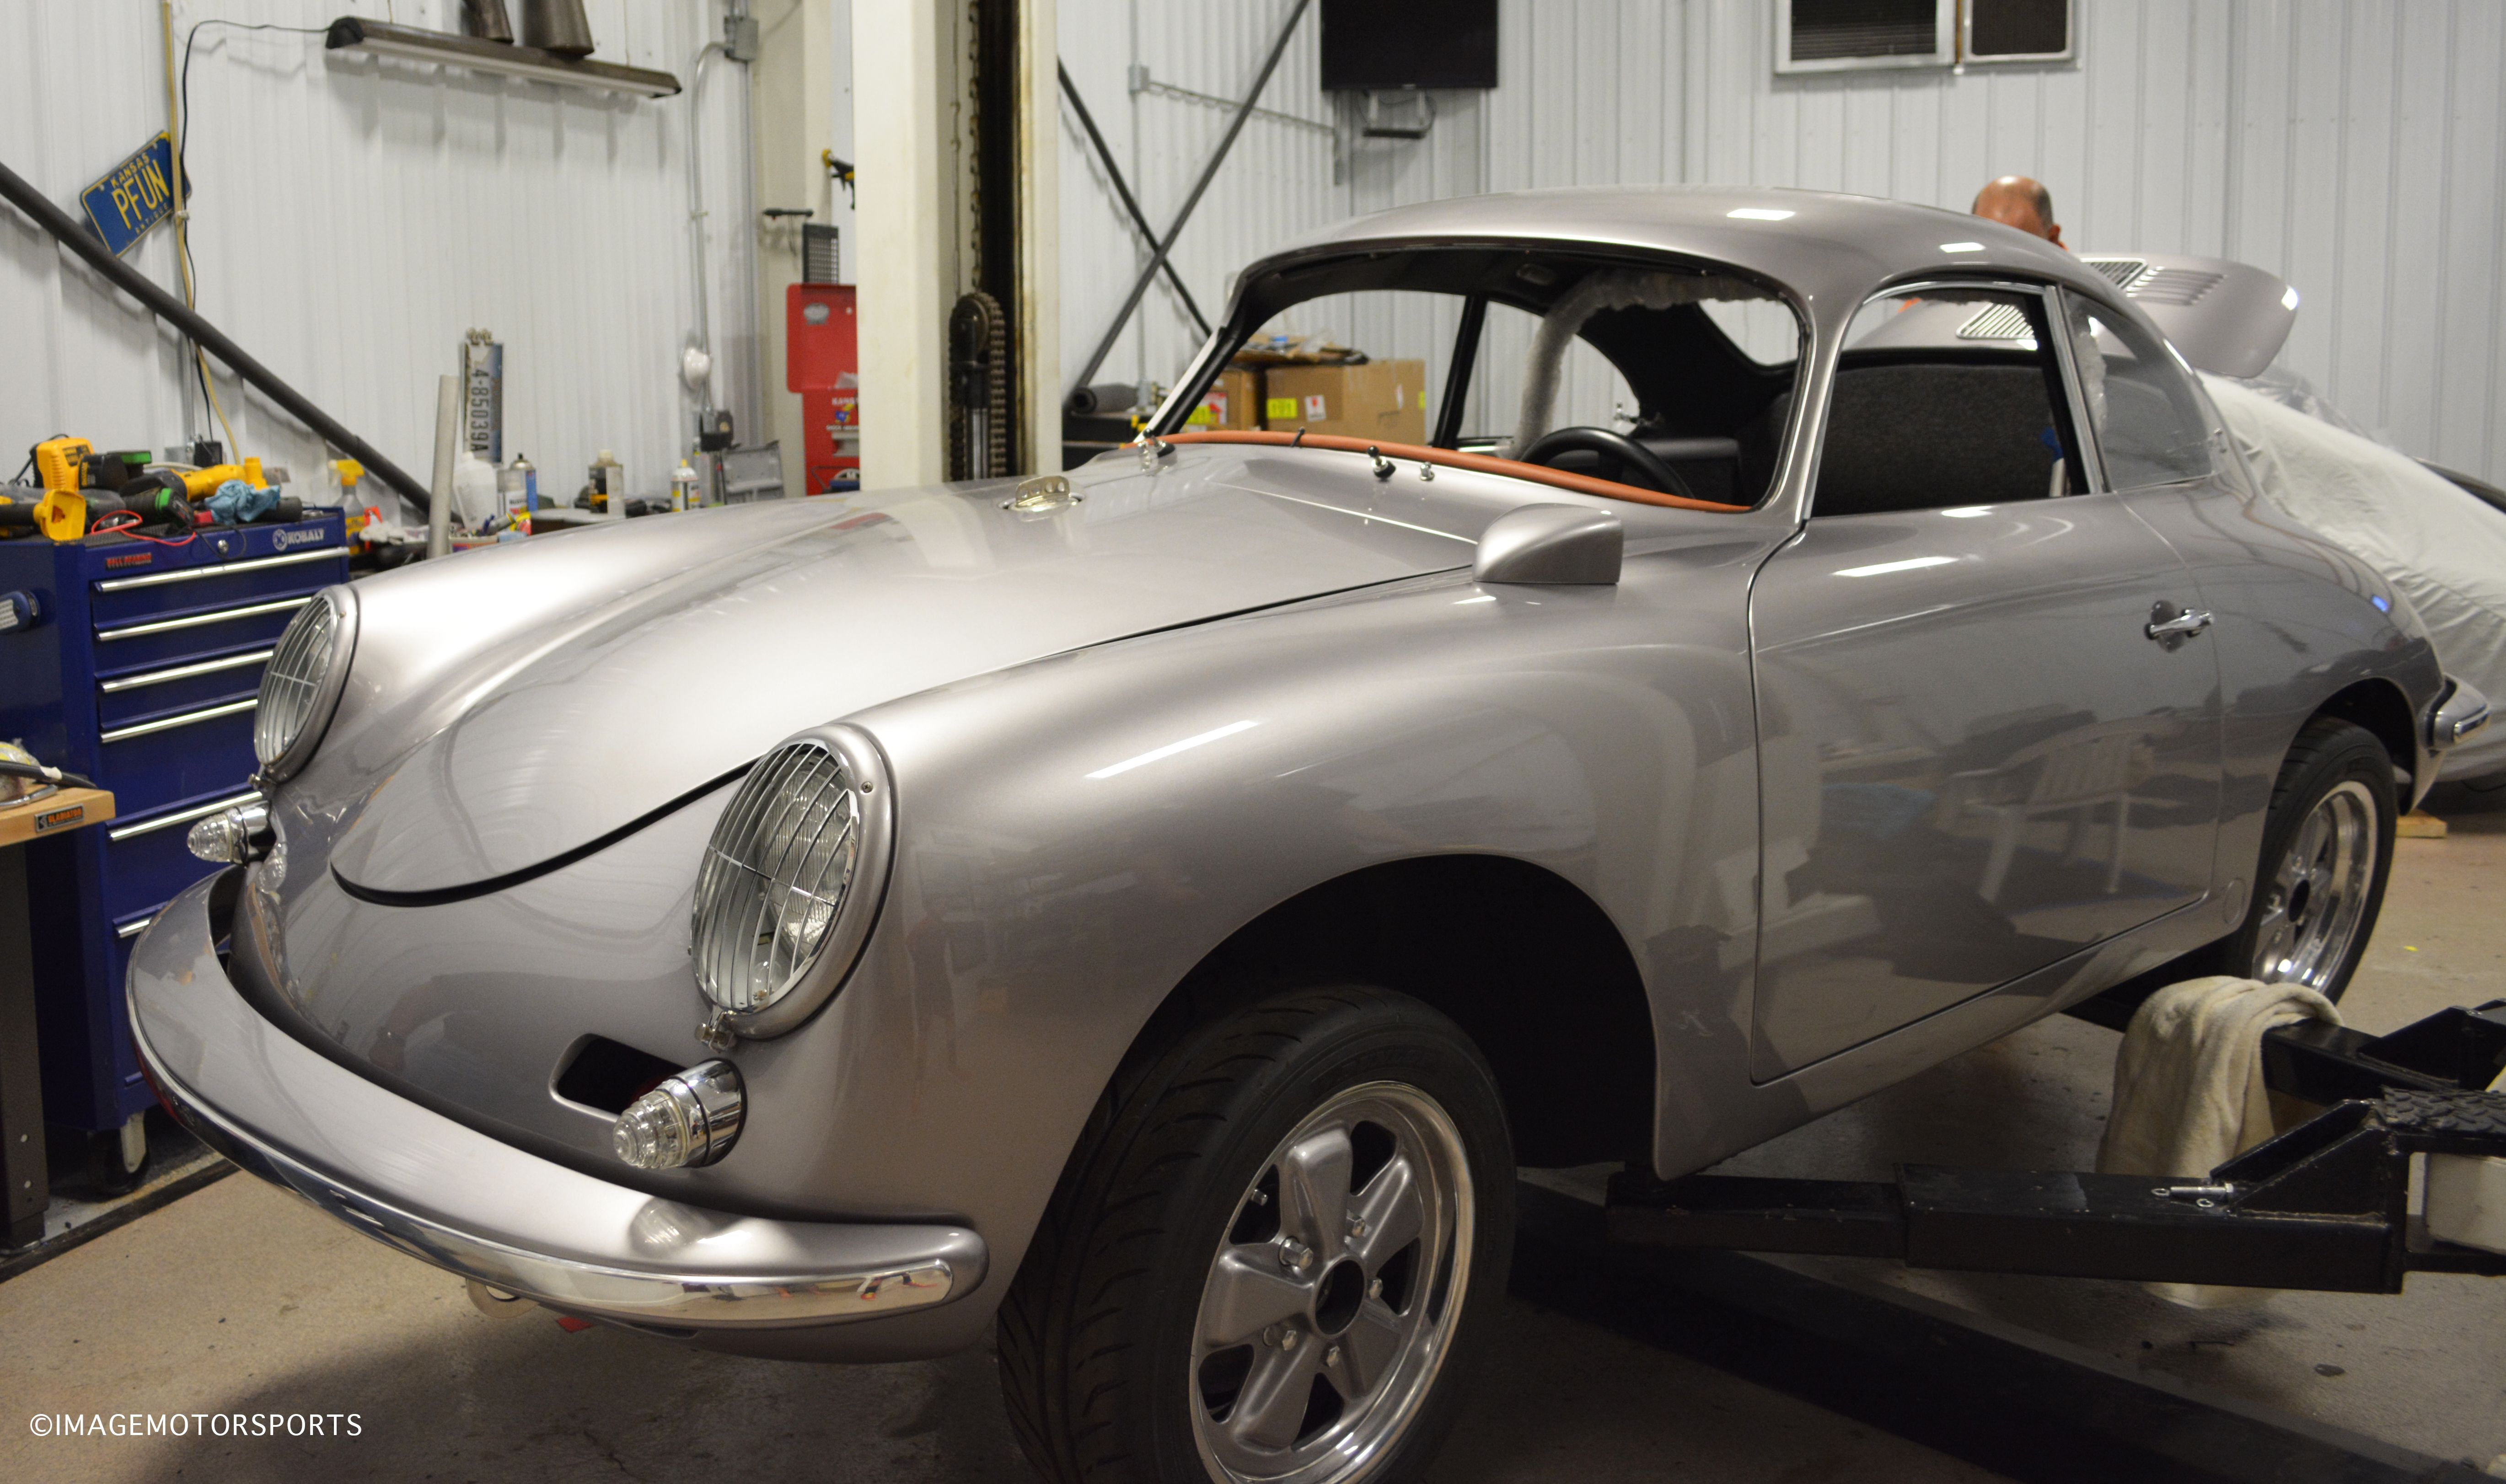 1962 Porsche T 5 Coupe With GT Addition Detailed Pictures And Video Visit The